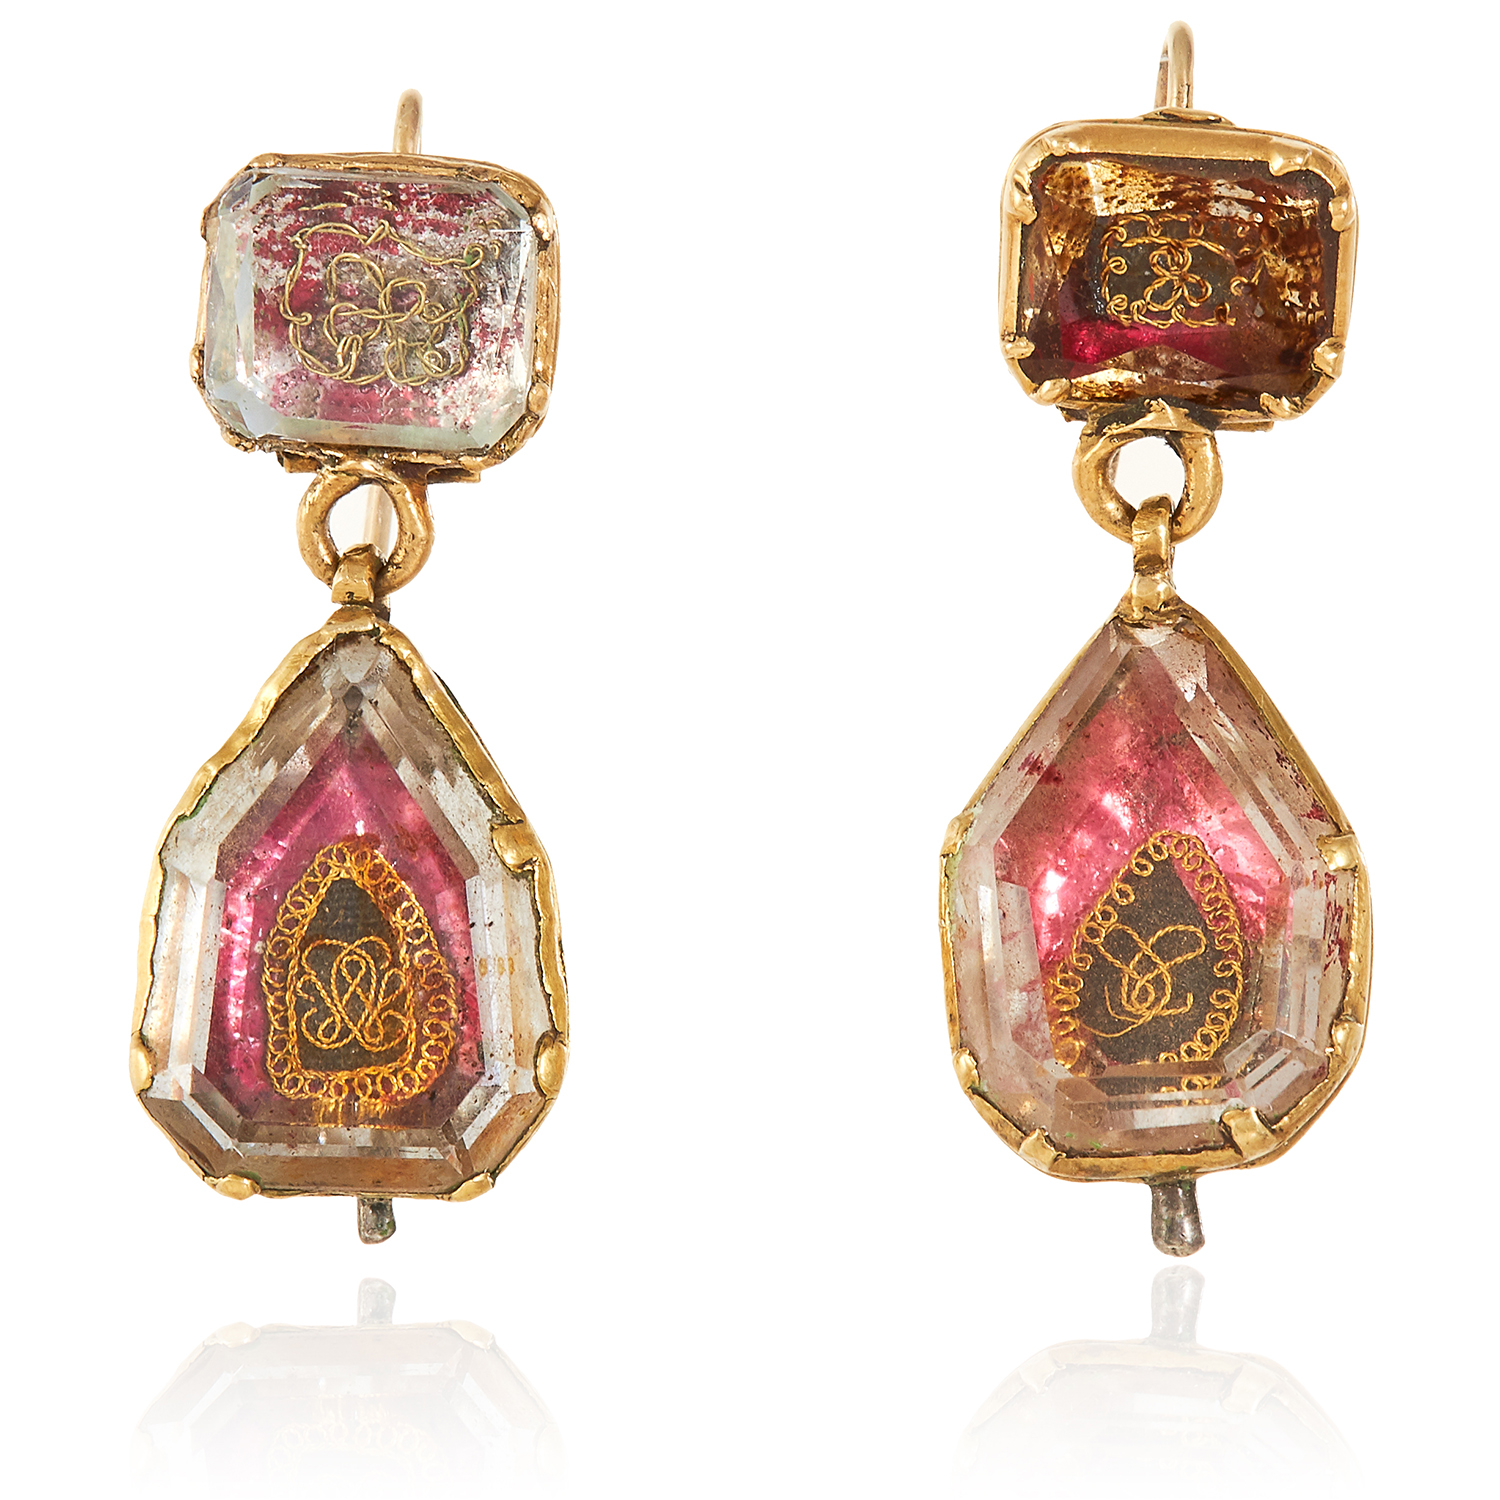 Los 51 - A PAIR OF ANTIQUE STUART CRYSTAL MOURNING EARRINGS in high carat yellow gold, 18th century, each